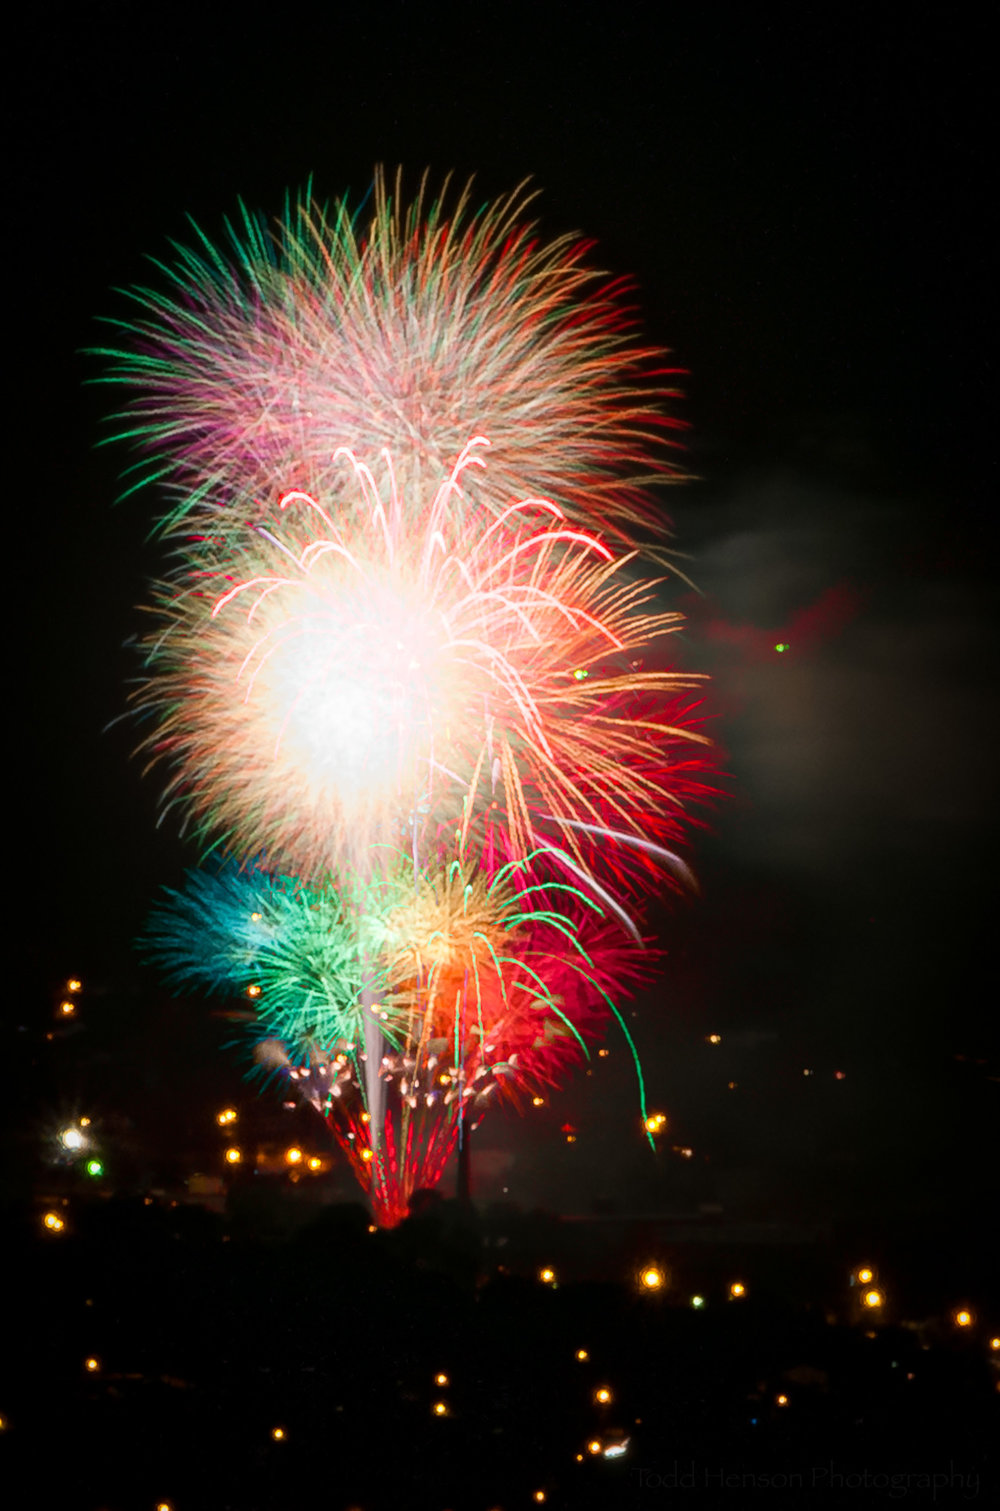 Third grouping of multiple fireworks images.